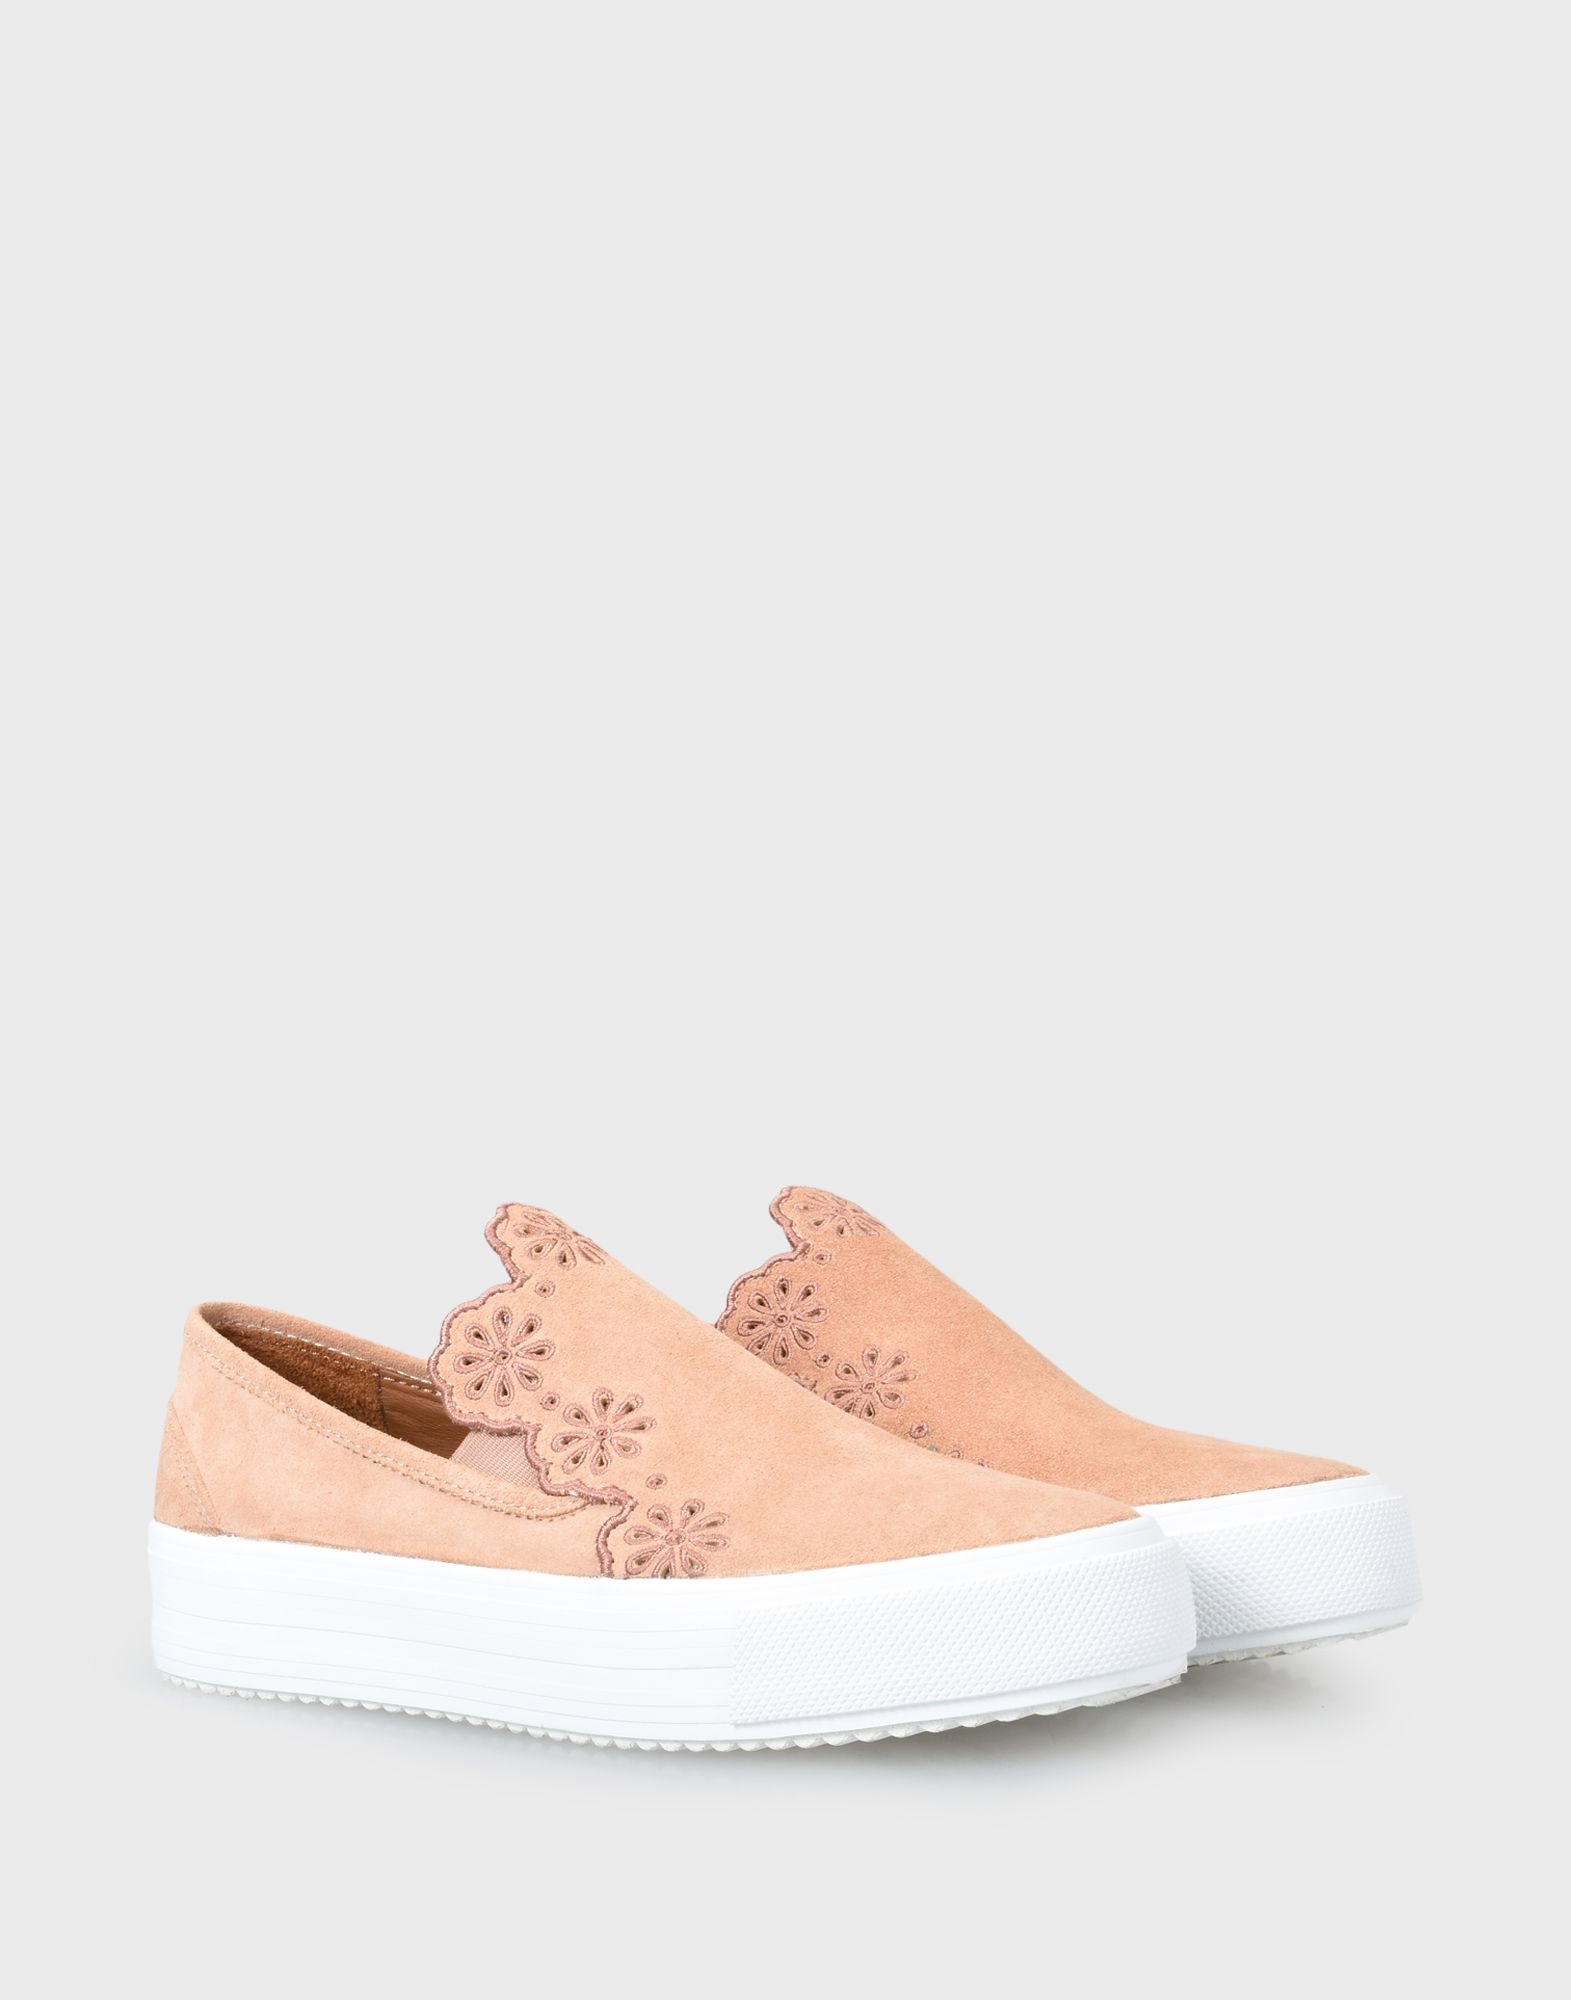 Sneakers See By Chloé Donna 11380337UL - 11380337UL Donna 79a73c